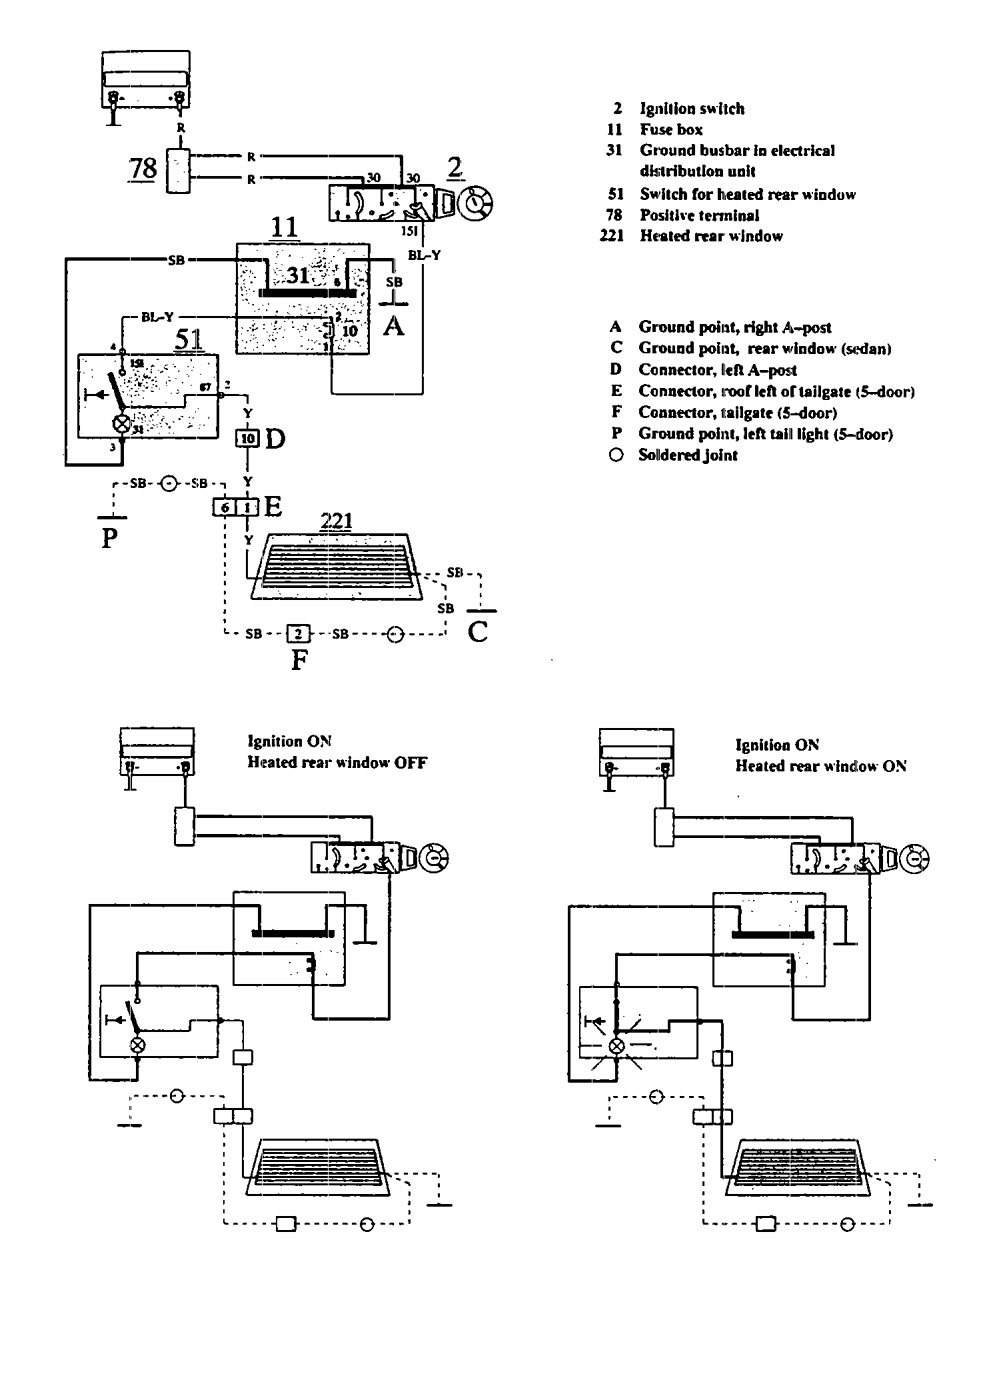 Volvo 940 Wiring Diagram Instrument Cluster Electrical 91 240 Diagrams Schematics 1997 850